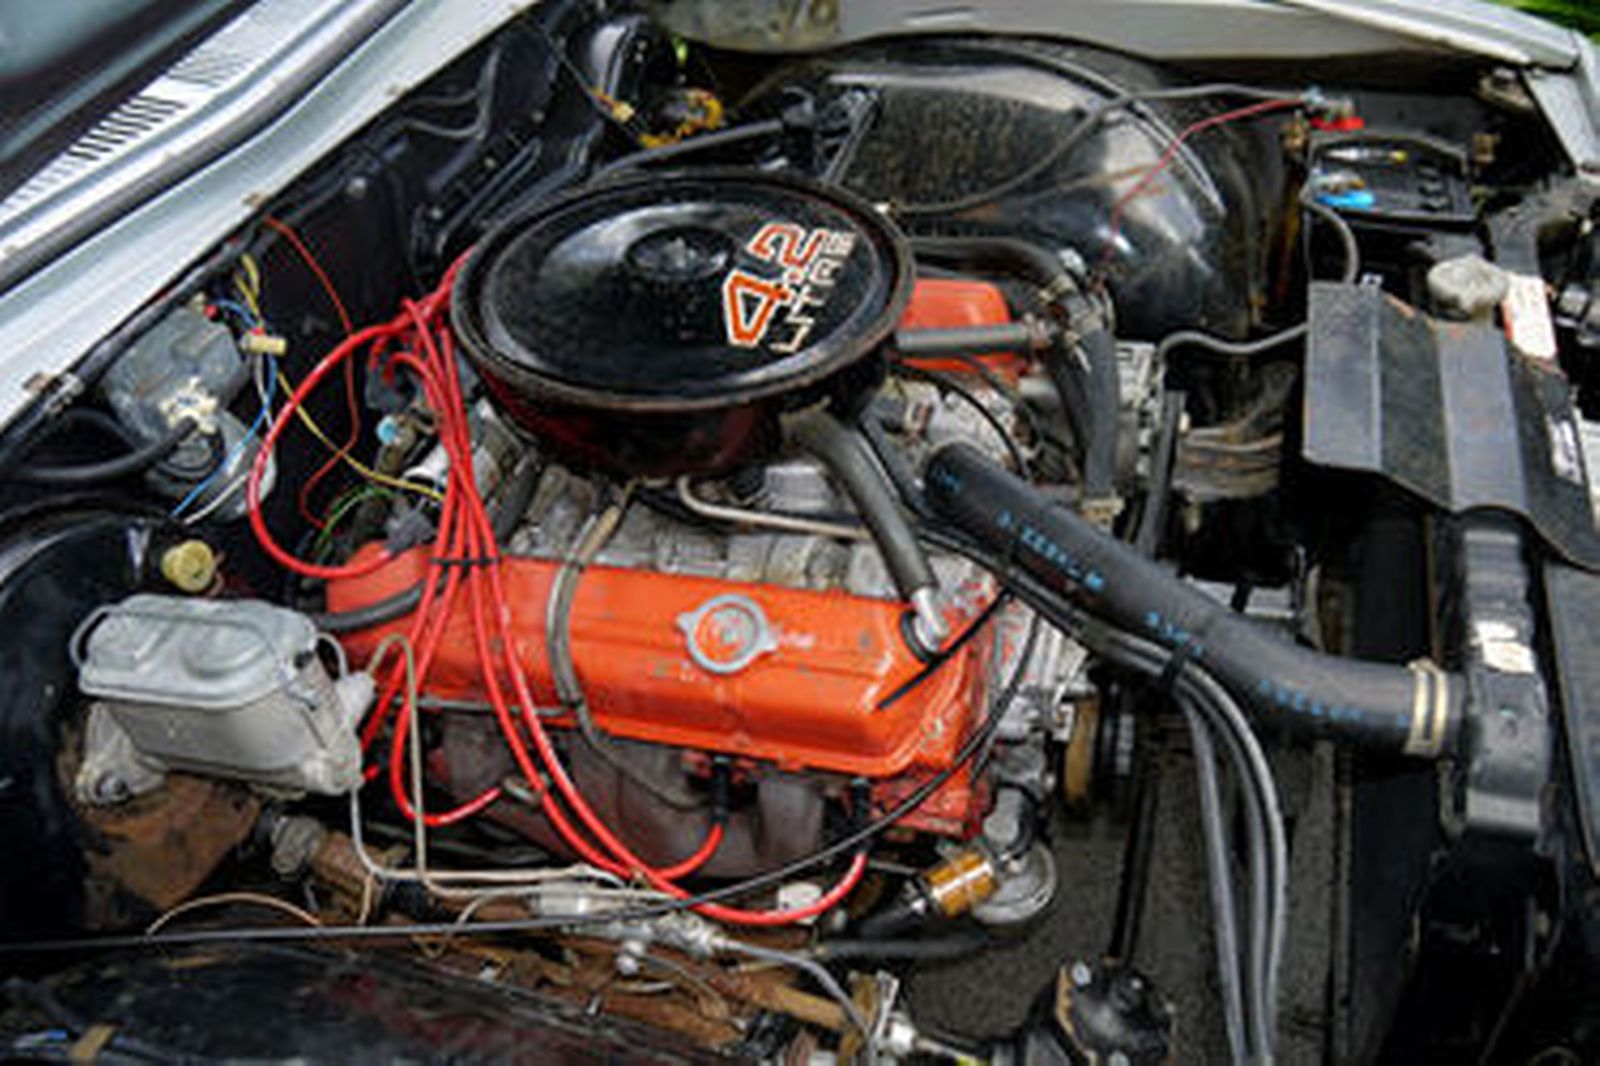 Maxresdefault also B Debbeb B B D E Fd Aeb Ed Af C additionally Envoy Seat Heater further Attachment likewise Holden Hj Monaro Gts Sedan. on engine wiring diagram